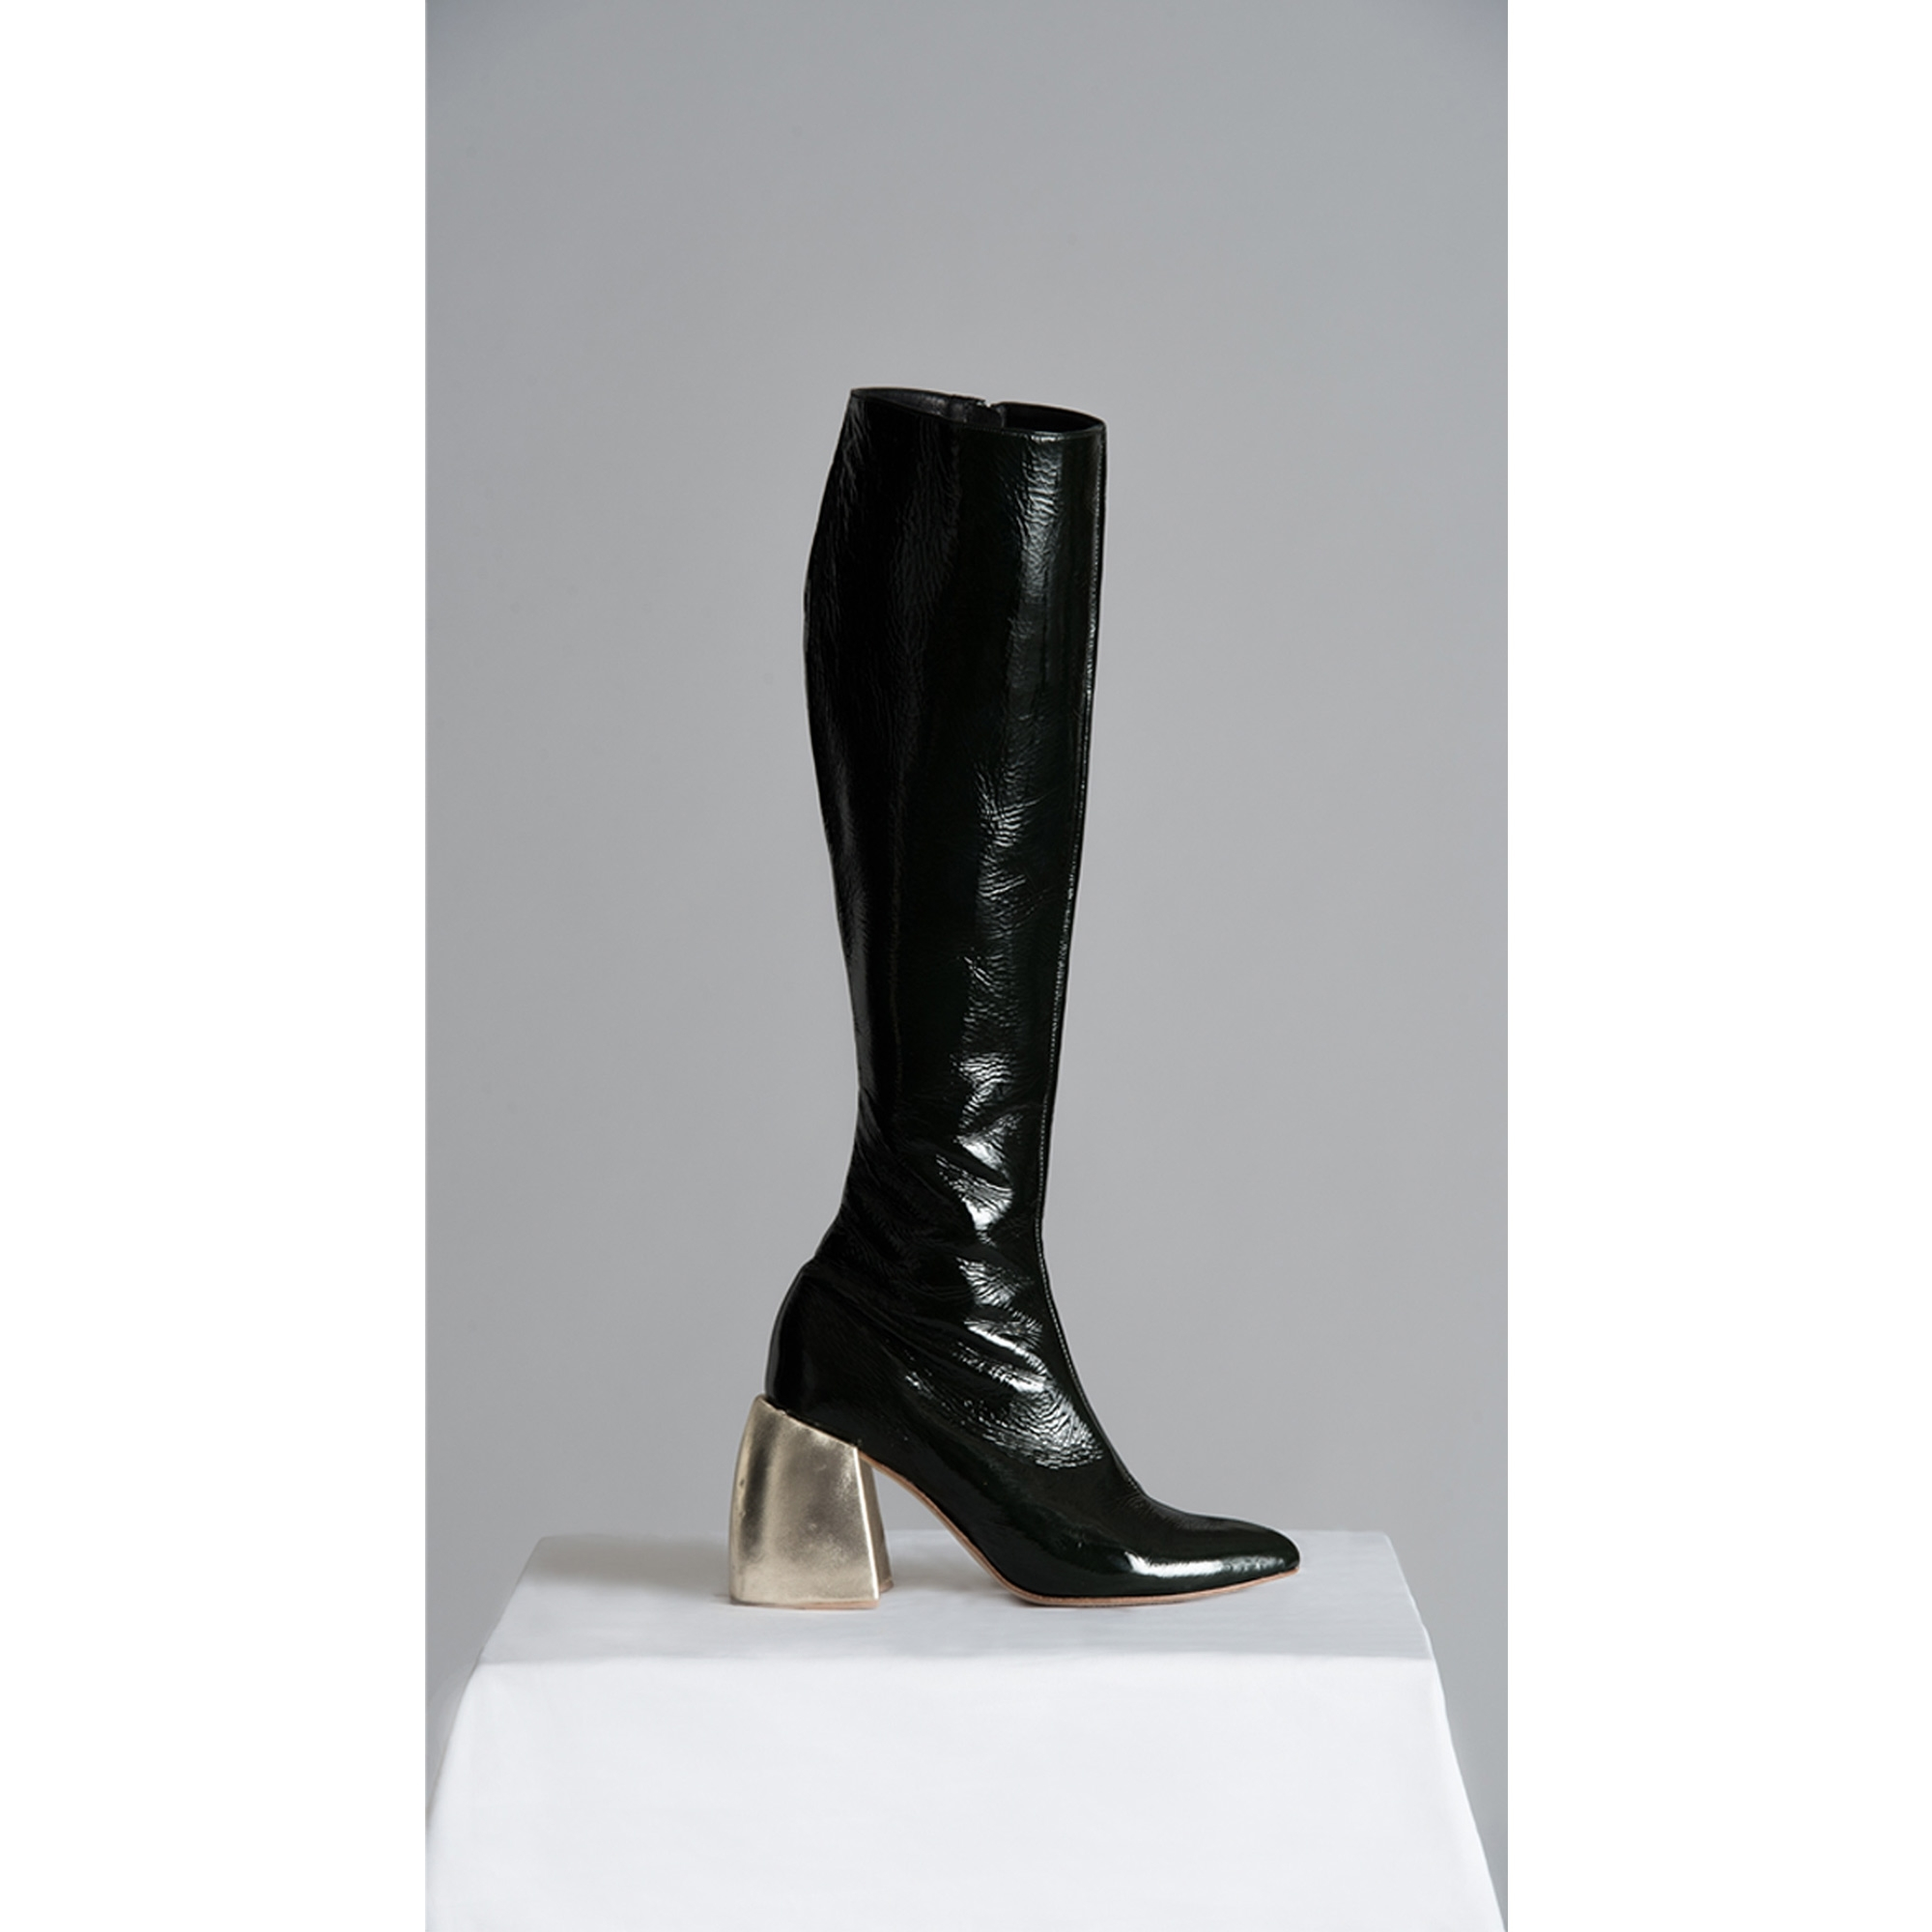 Made To Order Black Knee High Leather Boots With Wooden Heels